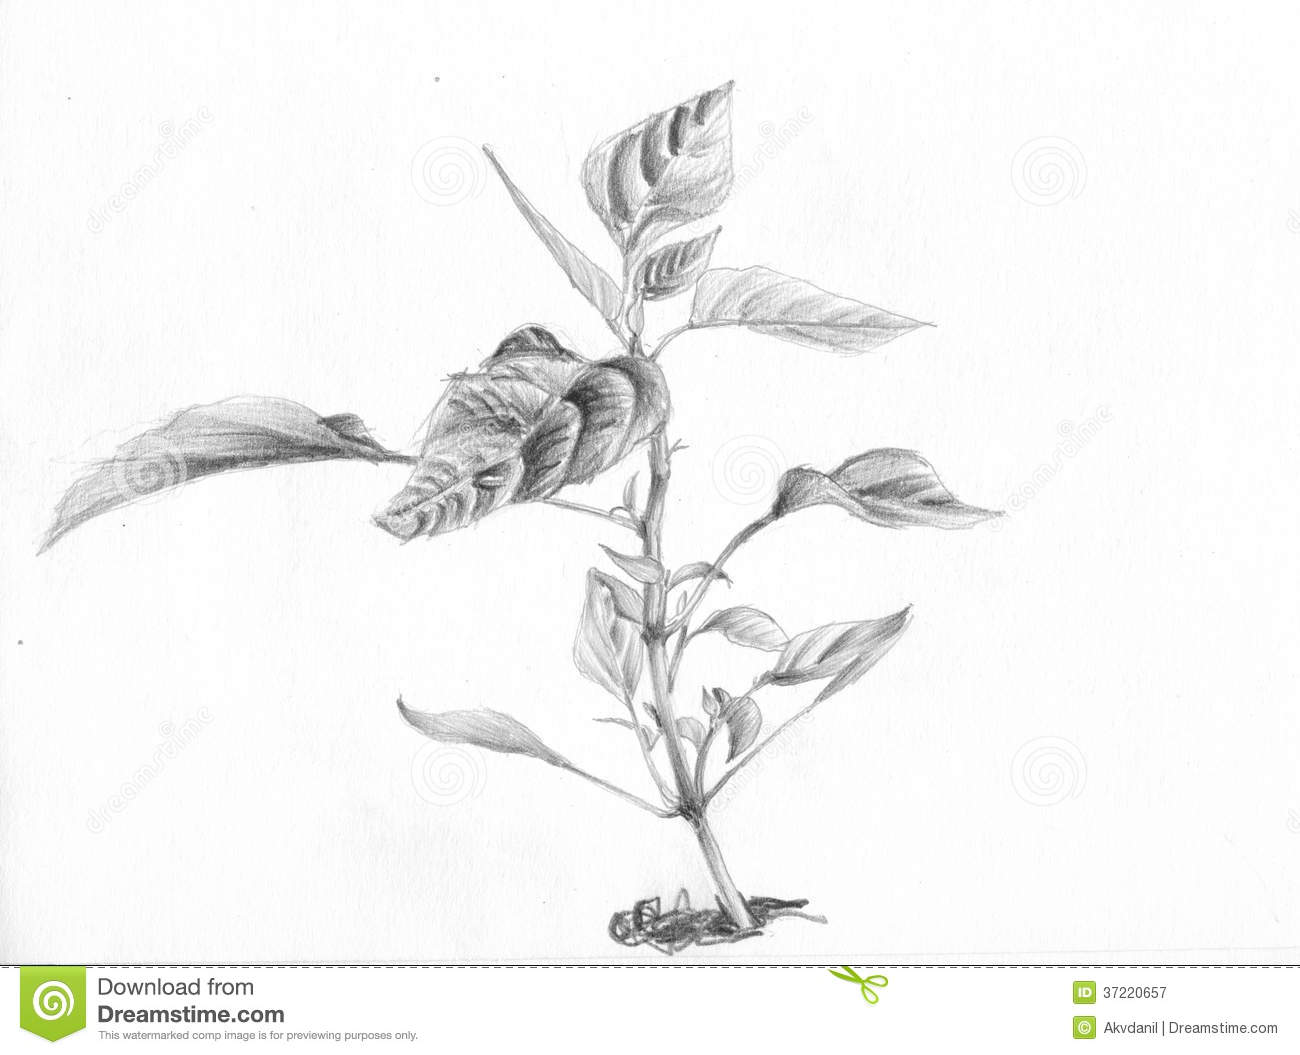 6498731 also Stock Illustration Contact Thin Icons Simple Clear Sharp Easy To Resize Image49218246 in addition Royalty Free Stock Images Black Traces Boots Image8994839 further Stock Photography Mouse Skeleton 3d Image23706682 furthermore Royalty Free Stock Photography Flower Plant Room Ground Pencil Sketch Image37220657. on travel plans